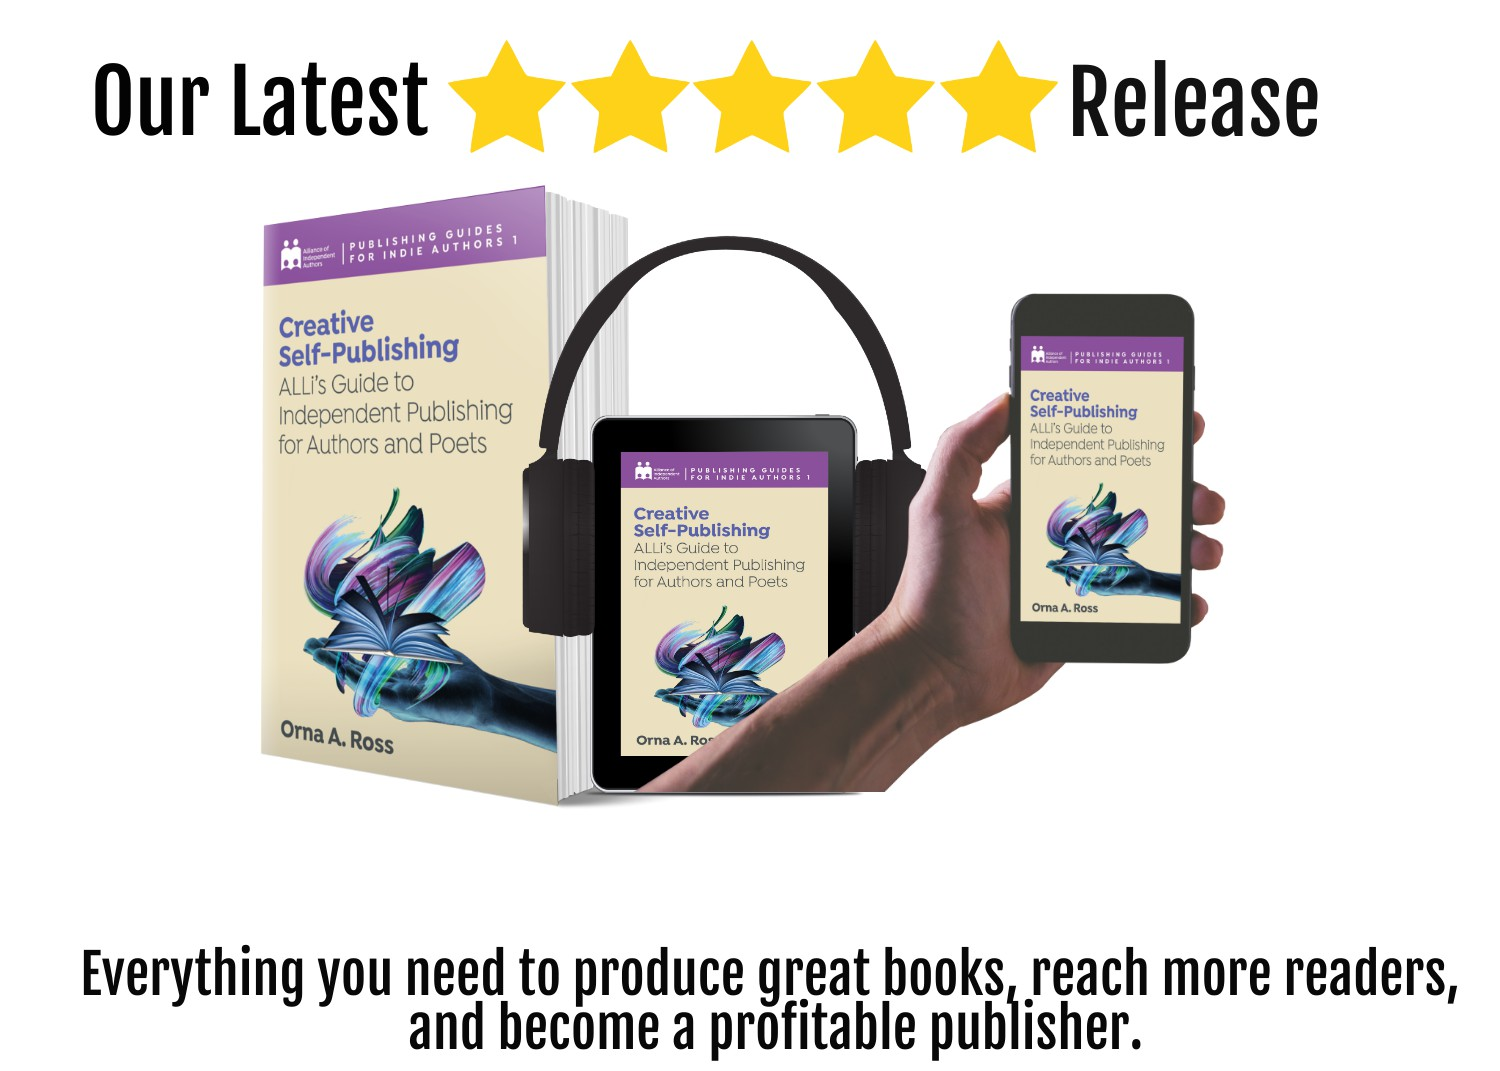 Creative Self-Publishing: ALLi's Guide To Independent Publishing For Authors And Poets